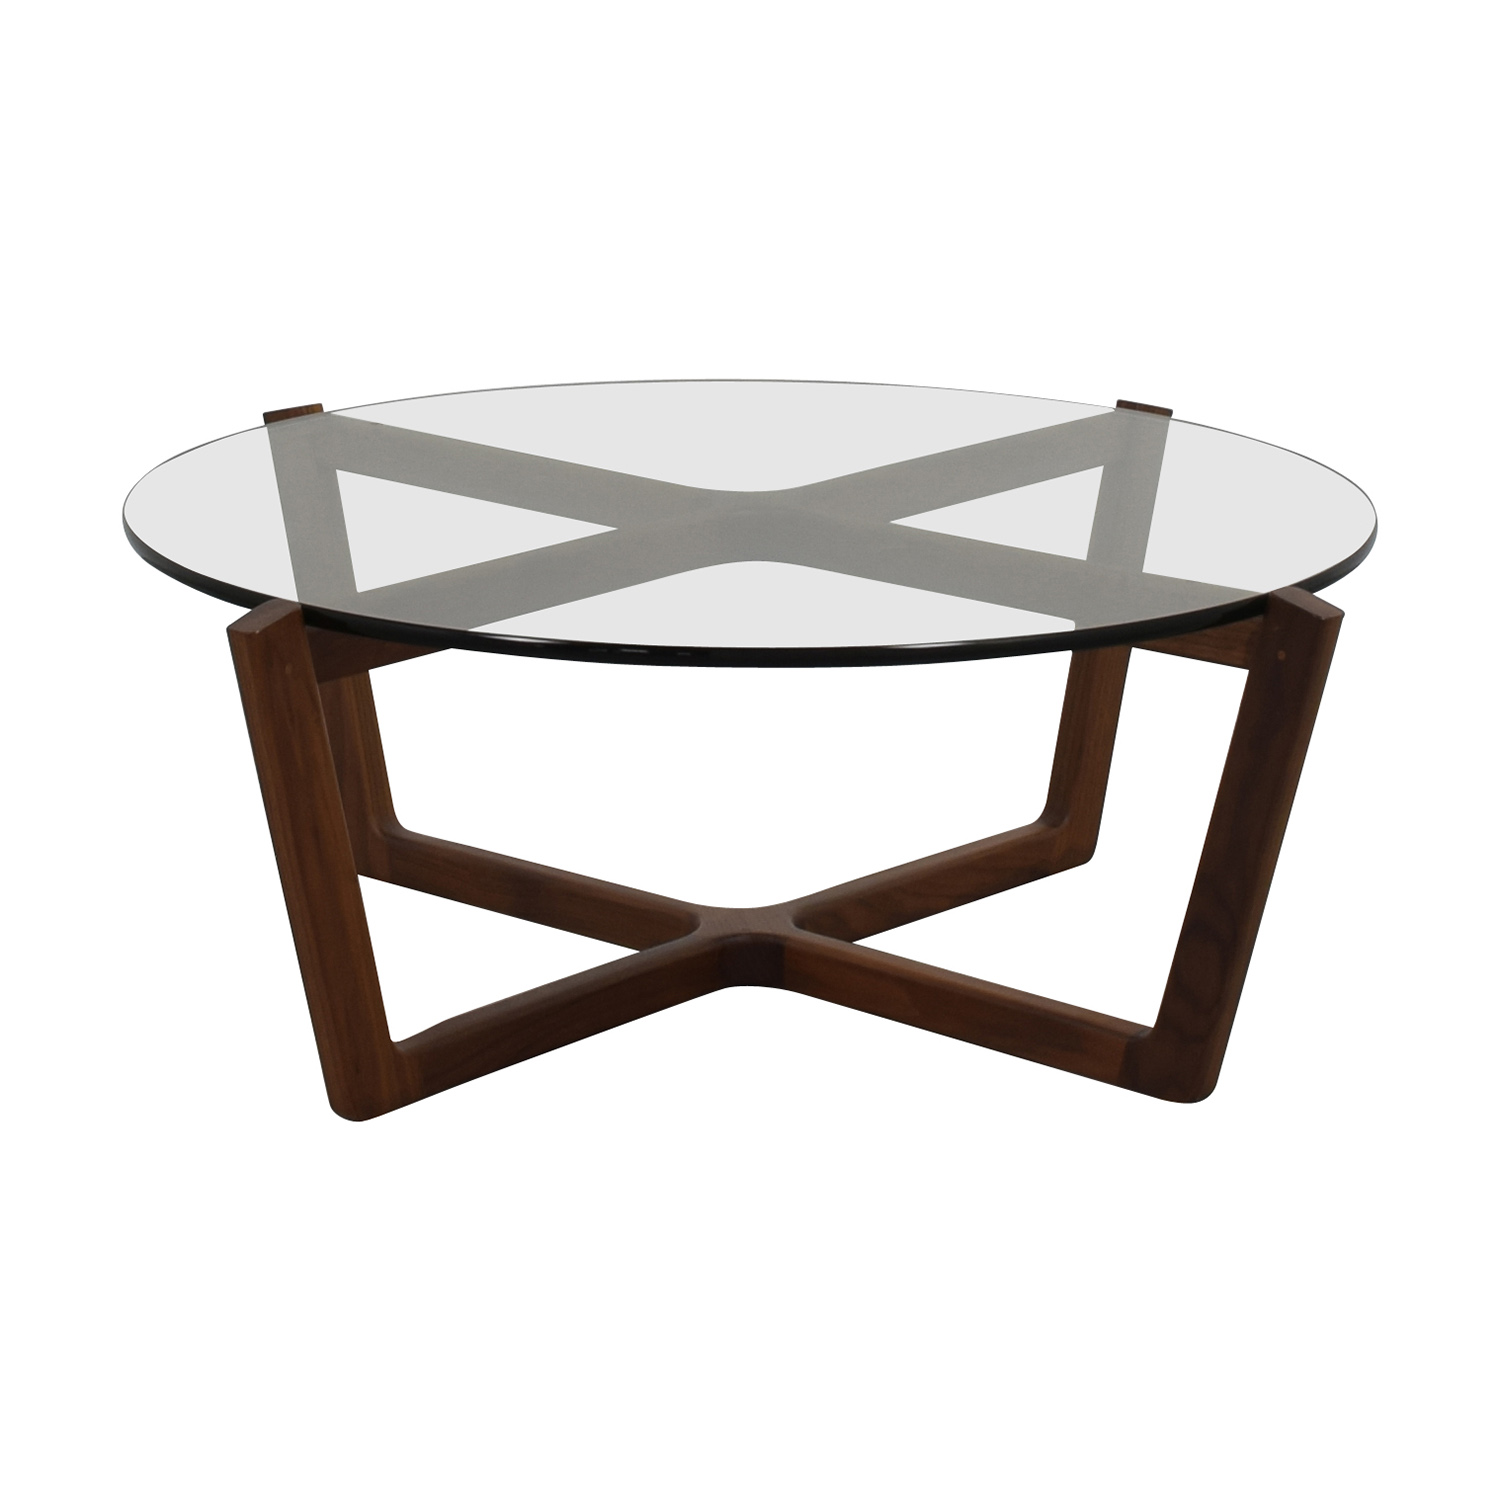 coffee table design within reach photo - 10